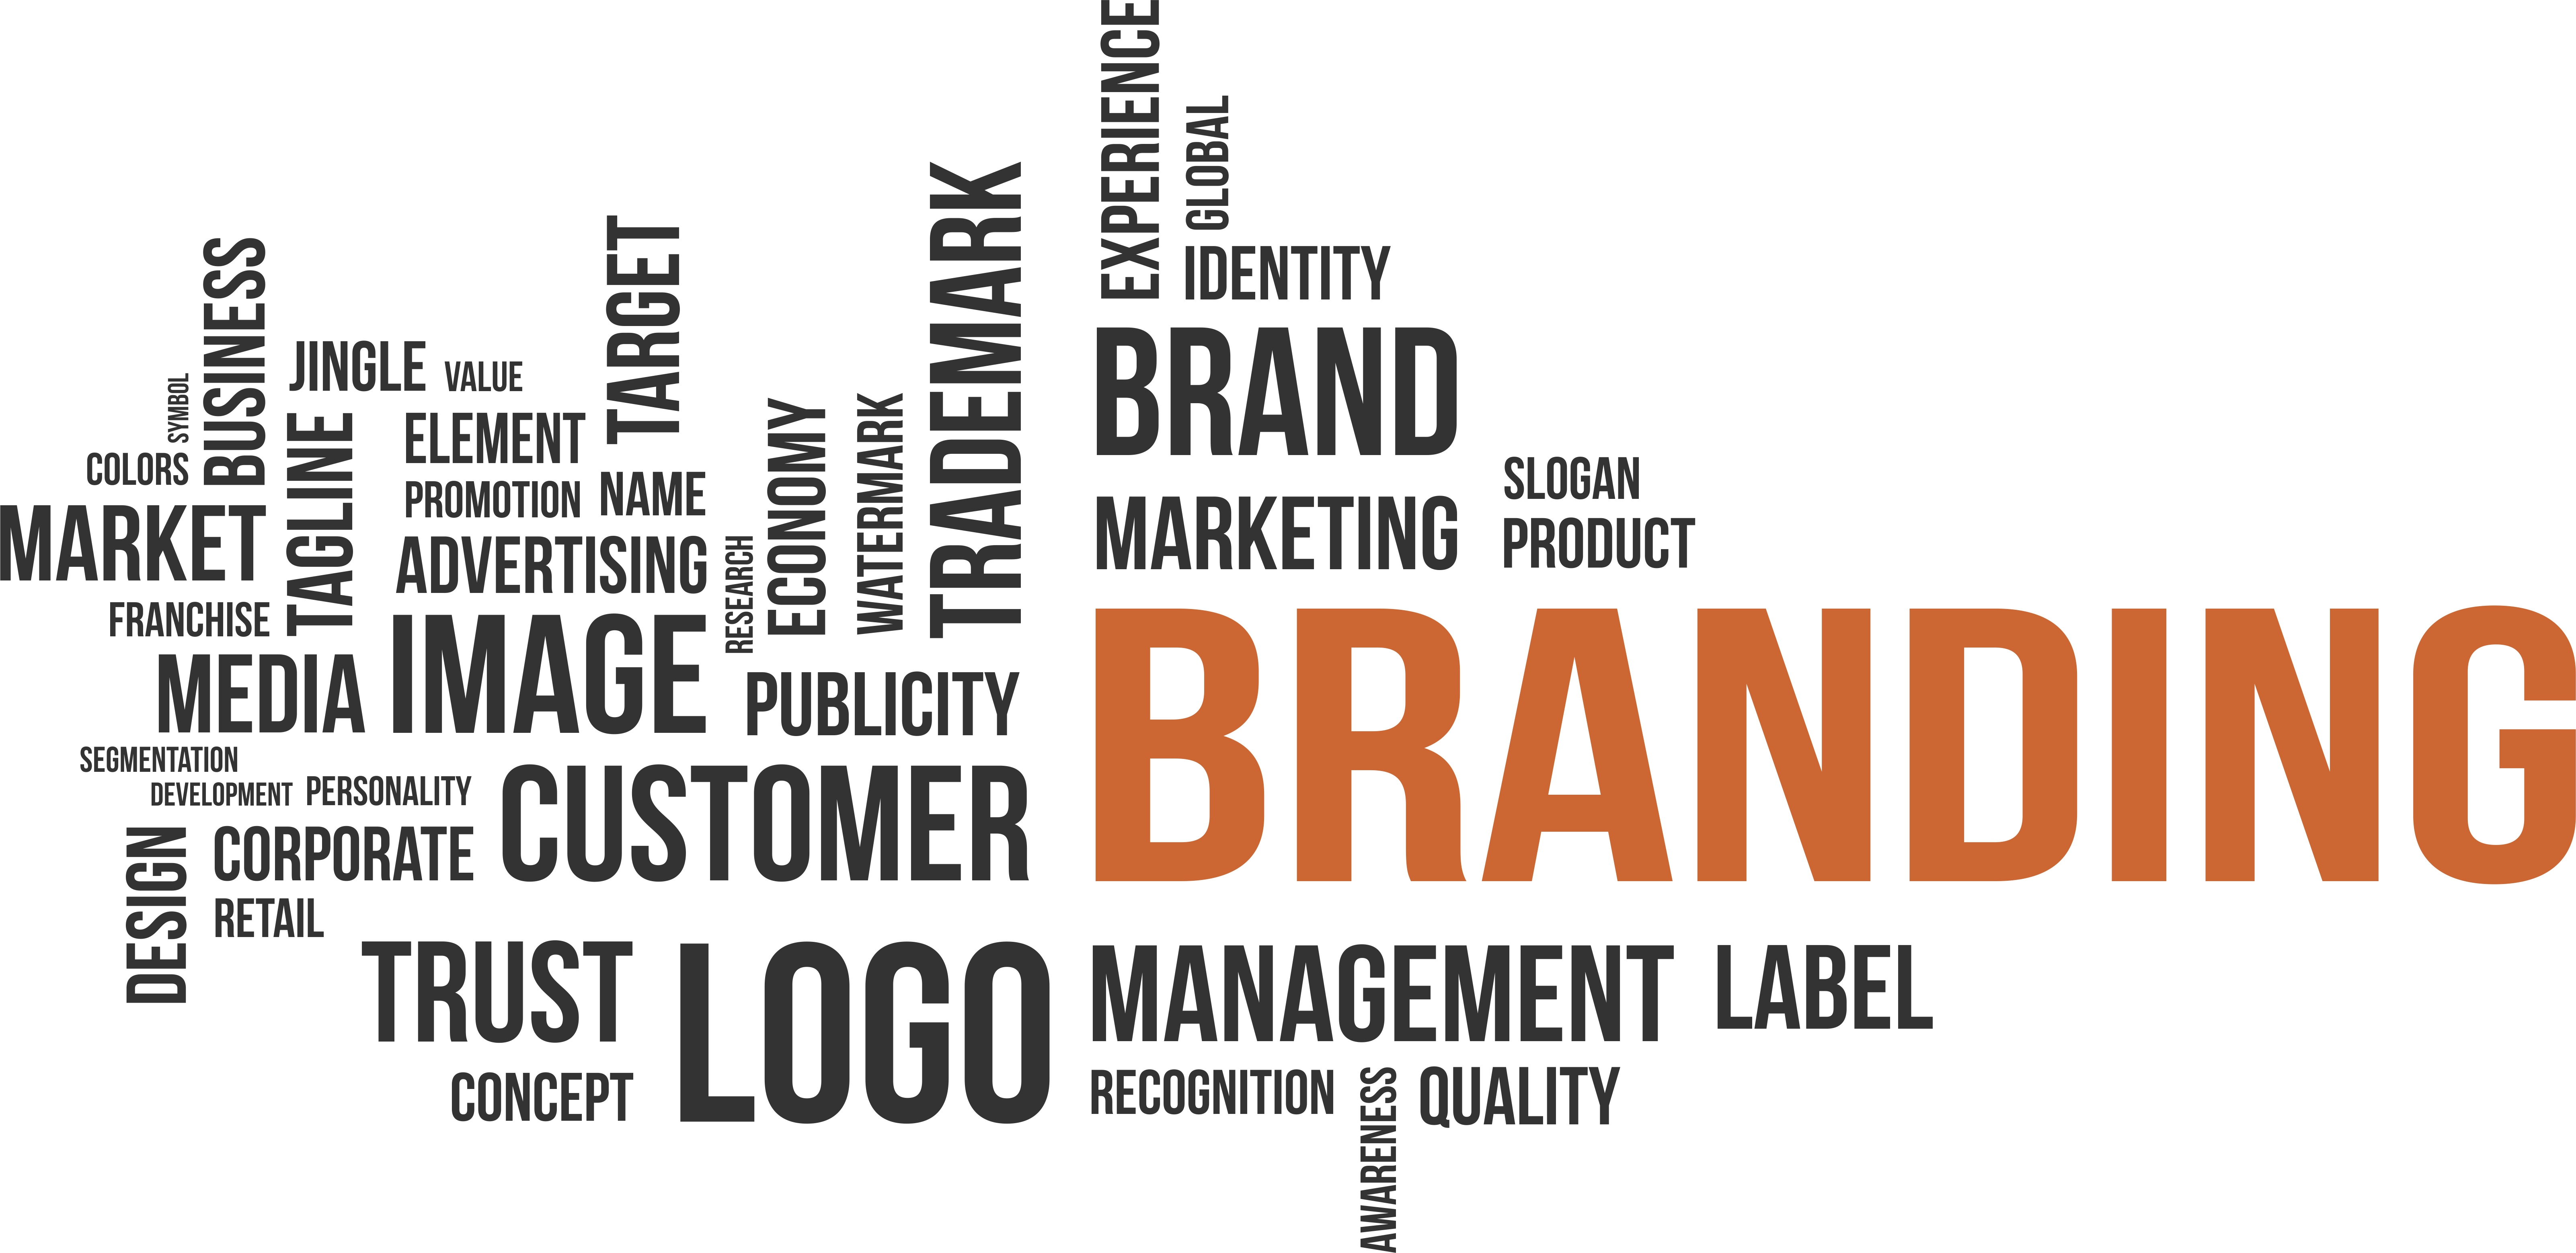 How Do Companies Succeed in Food Marketing?